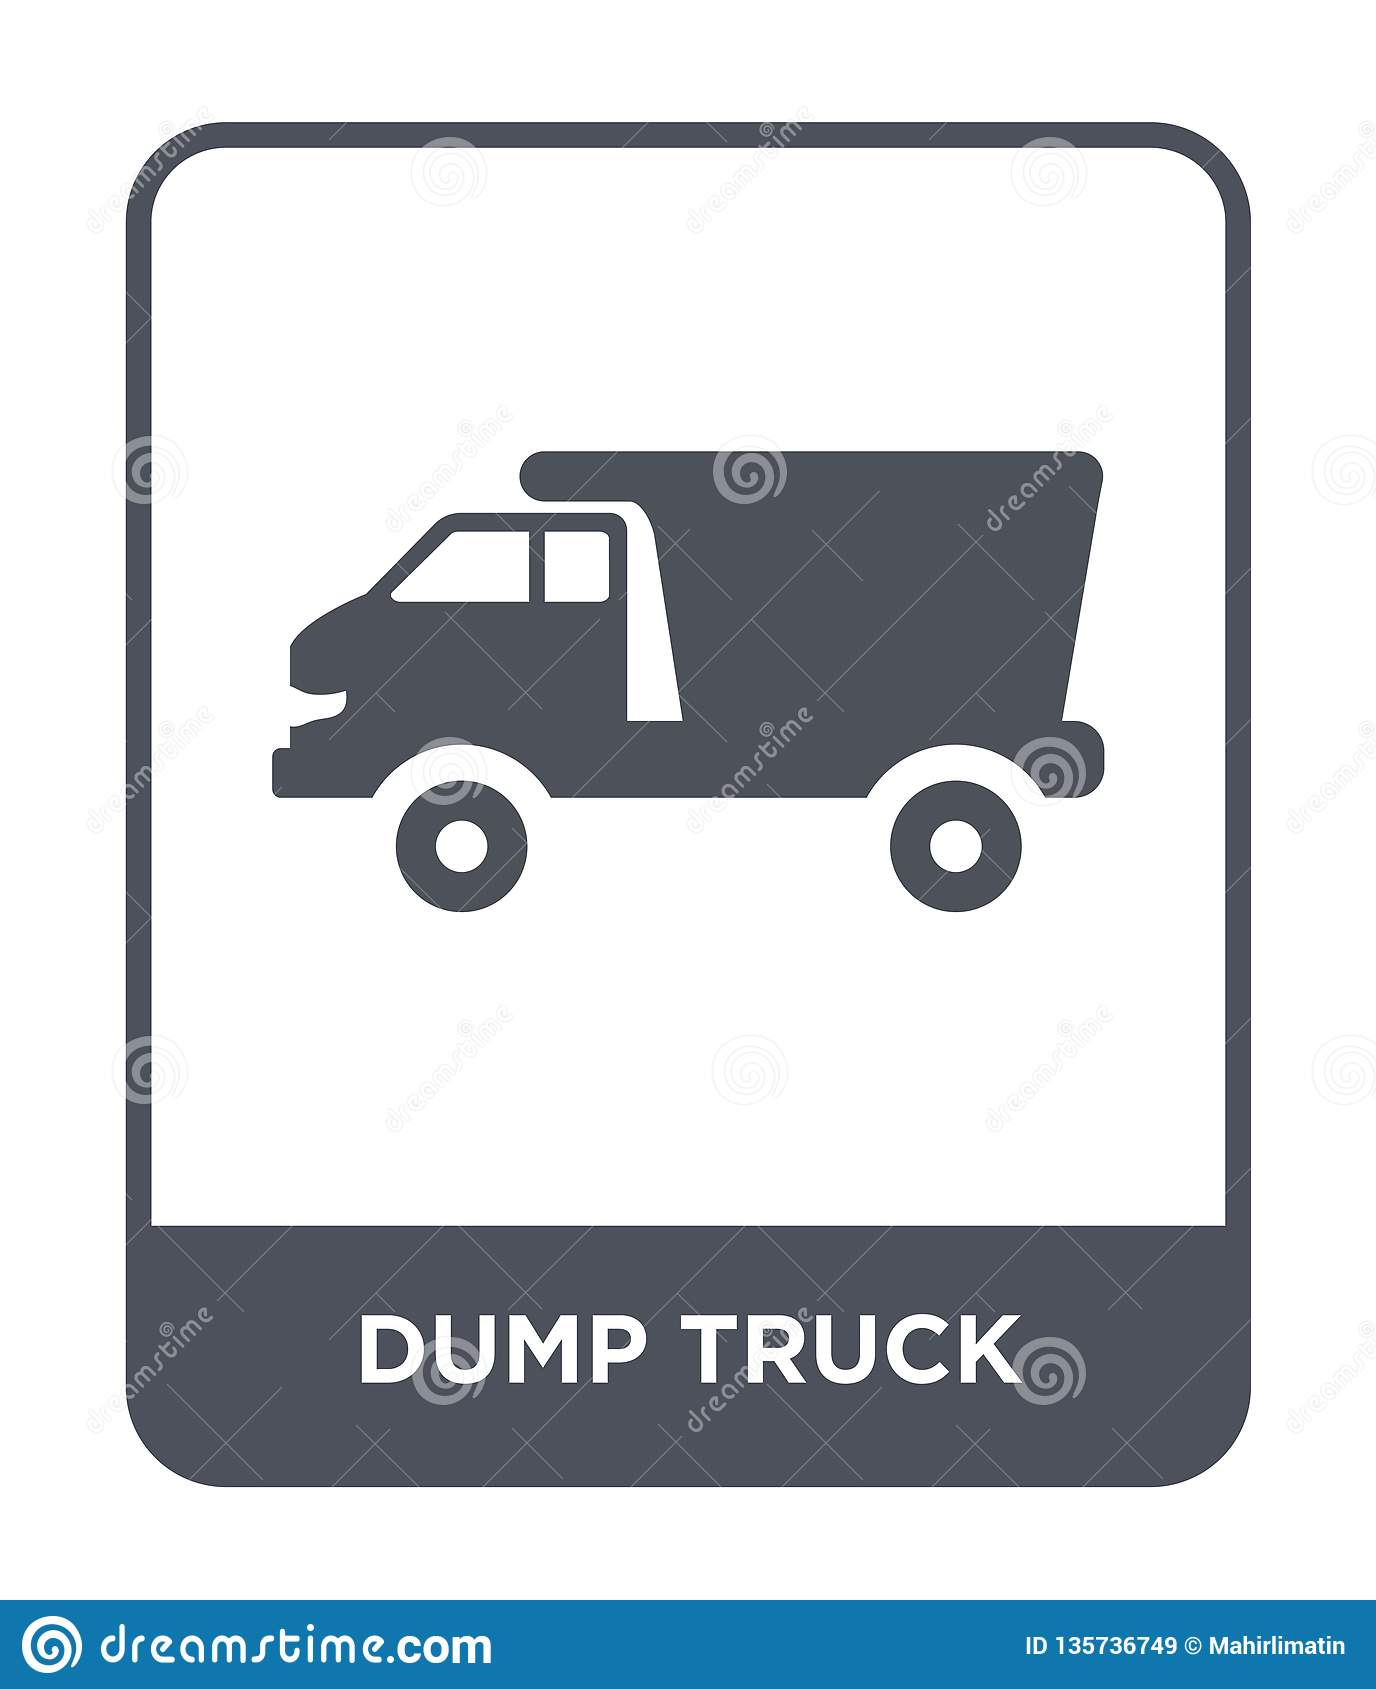 dump truck icon in trendy design style. dump truck icon isolated on white background. dump truck vector icon simple and modern